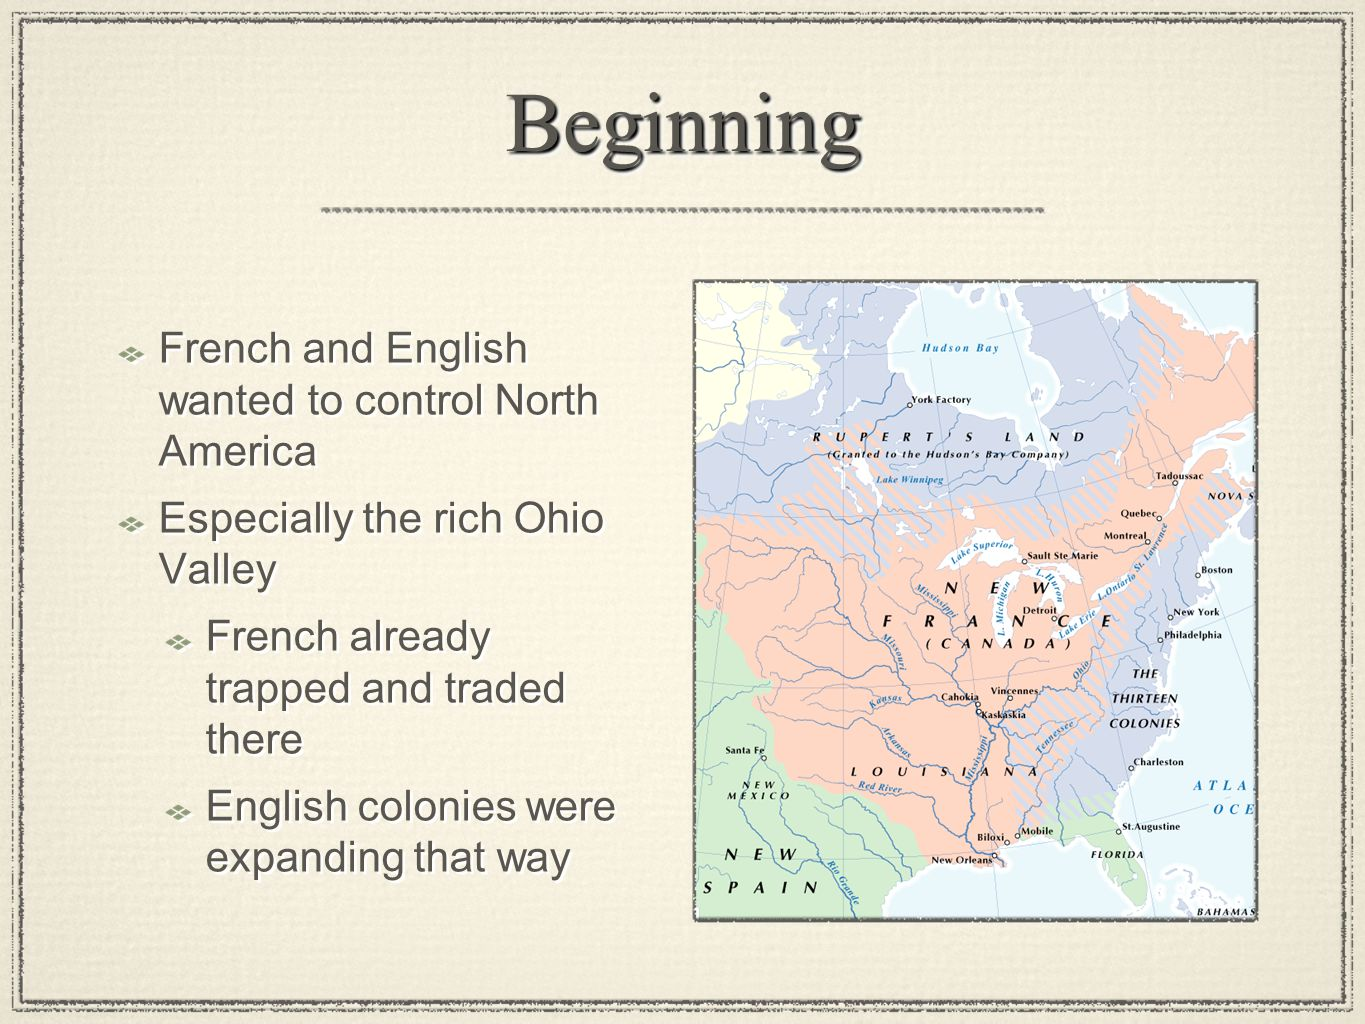 BeginningBeginning French and English wanted to control North America Especially the rich Ohio Valley French already trapped and traded there English colonies were expanding that way French and English wanted to control North America Especially the rich Ohio Valley French already trapped and traded there English colonies were expanding that way